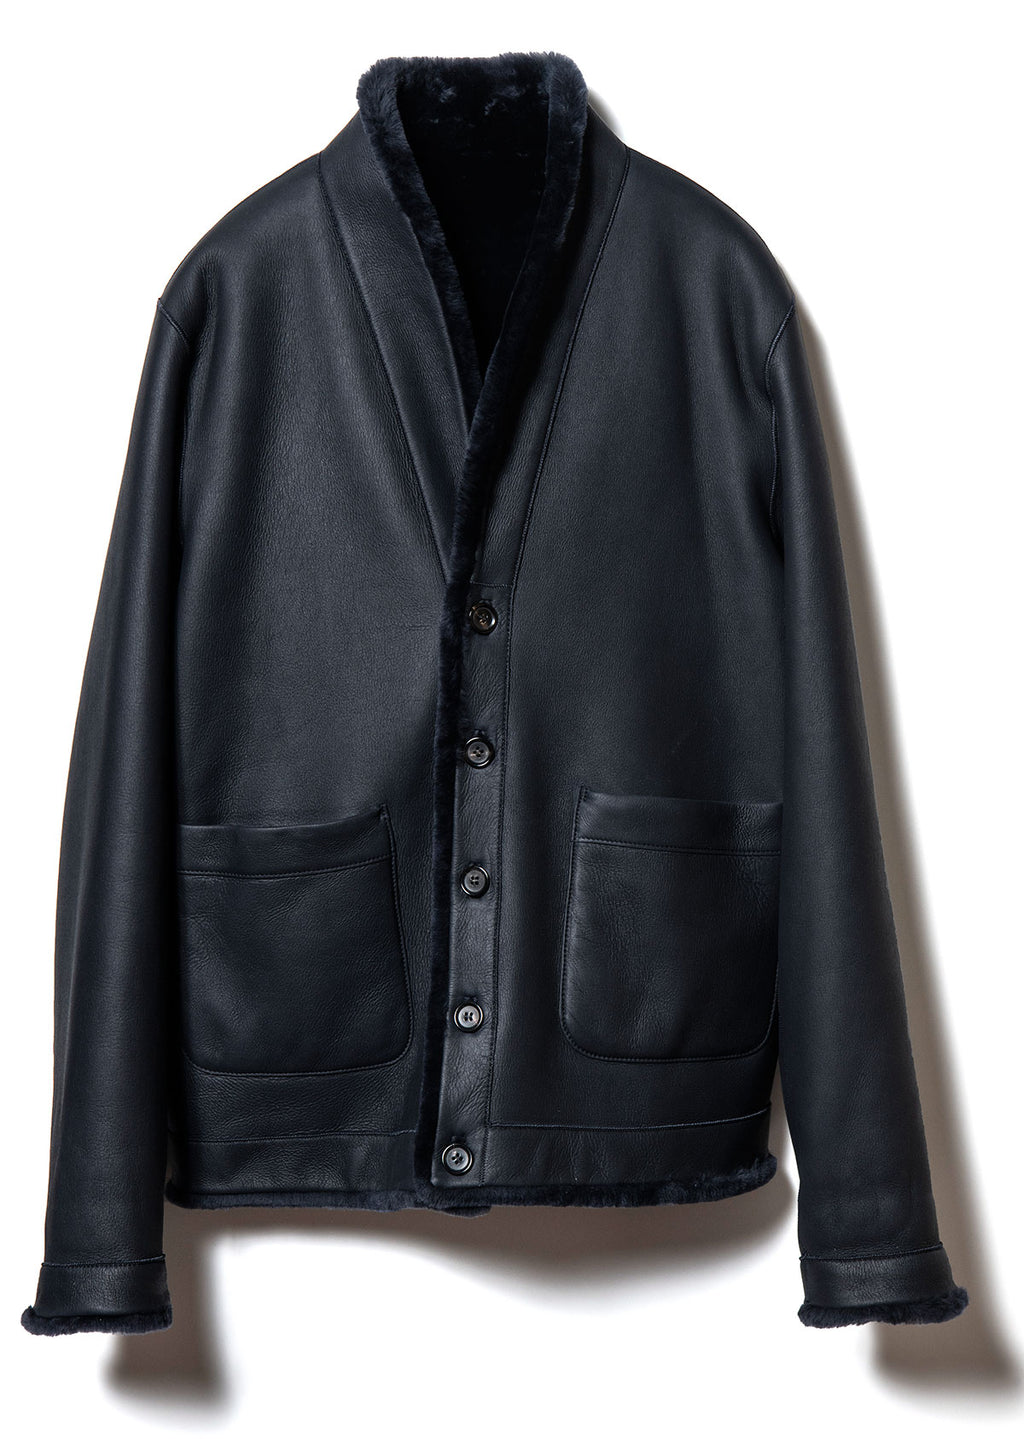 Spanish Merino Reversible Jacket in Dark Navy (CM-08)